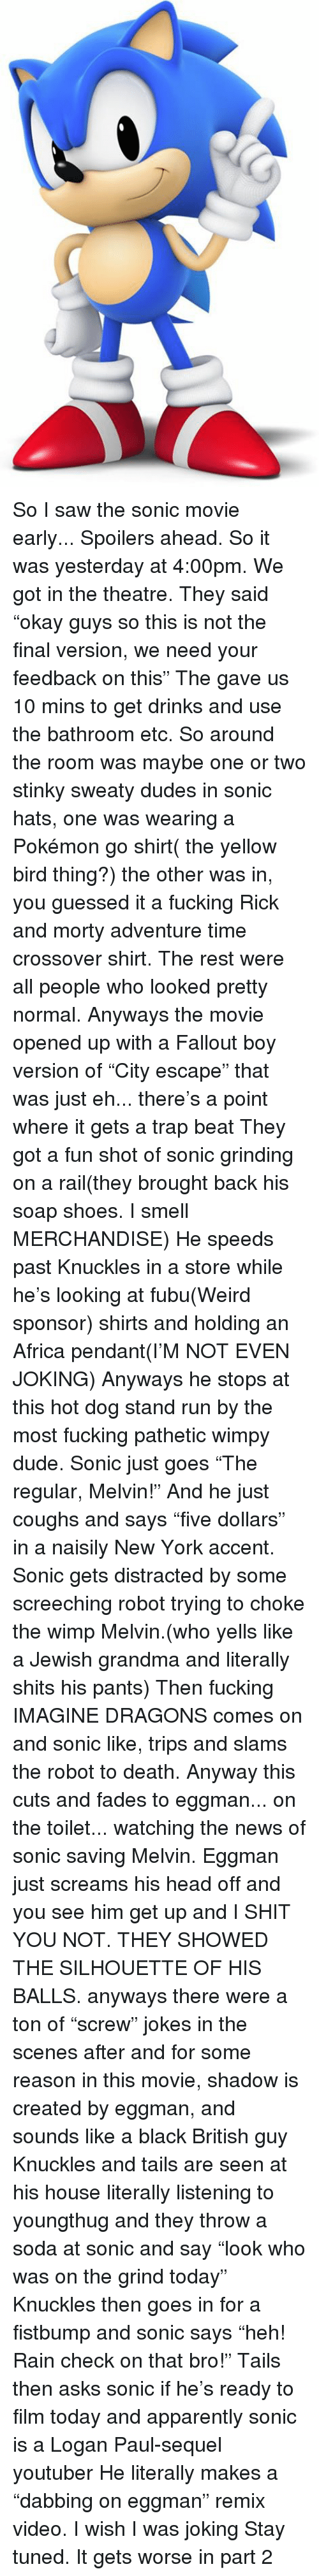 """rain check: So I saw the sonic movie early... Spoilers ahead.  So it was yesterday at 4:00pm. We got in the theatre. They said """"okay guys so this is not the final version, we need your feedback on this"""" The gave us 10 mins to get drinks and use the bathroom etc.  So around the room was maybe one or two stinky sweaty dudes in sonic hats, one was wearing a Pokémon go shirt( the yellow bird thing?) the other was in, you guessed it a fucking Rick and morty adventure time crossover shirt. The rest were all people who looked pretty normal.  Anyways the movie opened up with a Fallout boy version of """"City escape"""" that was just eh... there's a point where it gets a trap beat  They got a fun shot of sonic grinding on a rail(they brought back his soap shoes. I smell MERCHANDISE)  He speeds past Knuckles in a store while he's looking at fubu(Weird sponsor) shirts and holding an Africa pendant(I'M NOT EVEN JOKING) Anyways he stops at this hot dog stand run by the most fucking pathetic wimpy dude. Sonic just goes """"The regular, Melvin!"""" And he just coughs and says """"five dollars"""" in a naisily New York accent. Sonic gets distracted by some screeching robot trying to choke the wimp Melvin.(who yells like a Jewish grandma and literally shits his pants)  Then fucking IMAGINE DRAGONS comes on and sonic like, trips and slams the robot to death.  Anyway this cuts and fades to eggman... on the toilet... watching the news of sonic saving Melvin.  Eggman just screams his head off and you see him get up and I SHIT YOU NOT. THEY SHOWED THE SILHOUETTE OF HIS BALLS.  anyways there were a ton of """"screw"""" jokes in the scenes after and for some reason in this movie, shadow is created by eggman, and sounds like a black British guy  Knuckles and tails are seen at his house literally listening to youngthug and they throw a soda at sonic and say """"look who was on the grind today""""   Knuckles then goes in for a fistbump and sonic says """"heh! Rain check on that bro!""""  Tails then asks sonic if he's ready to f"""